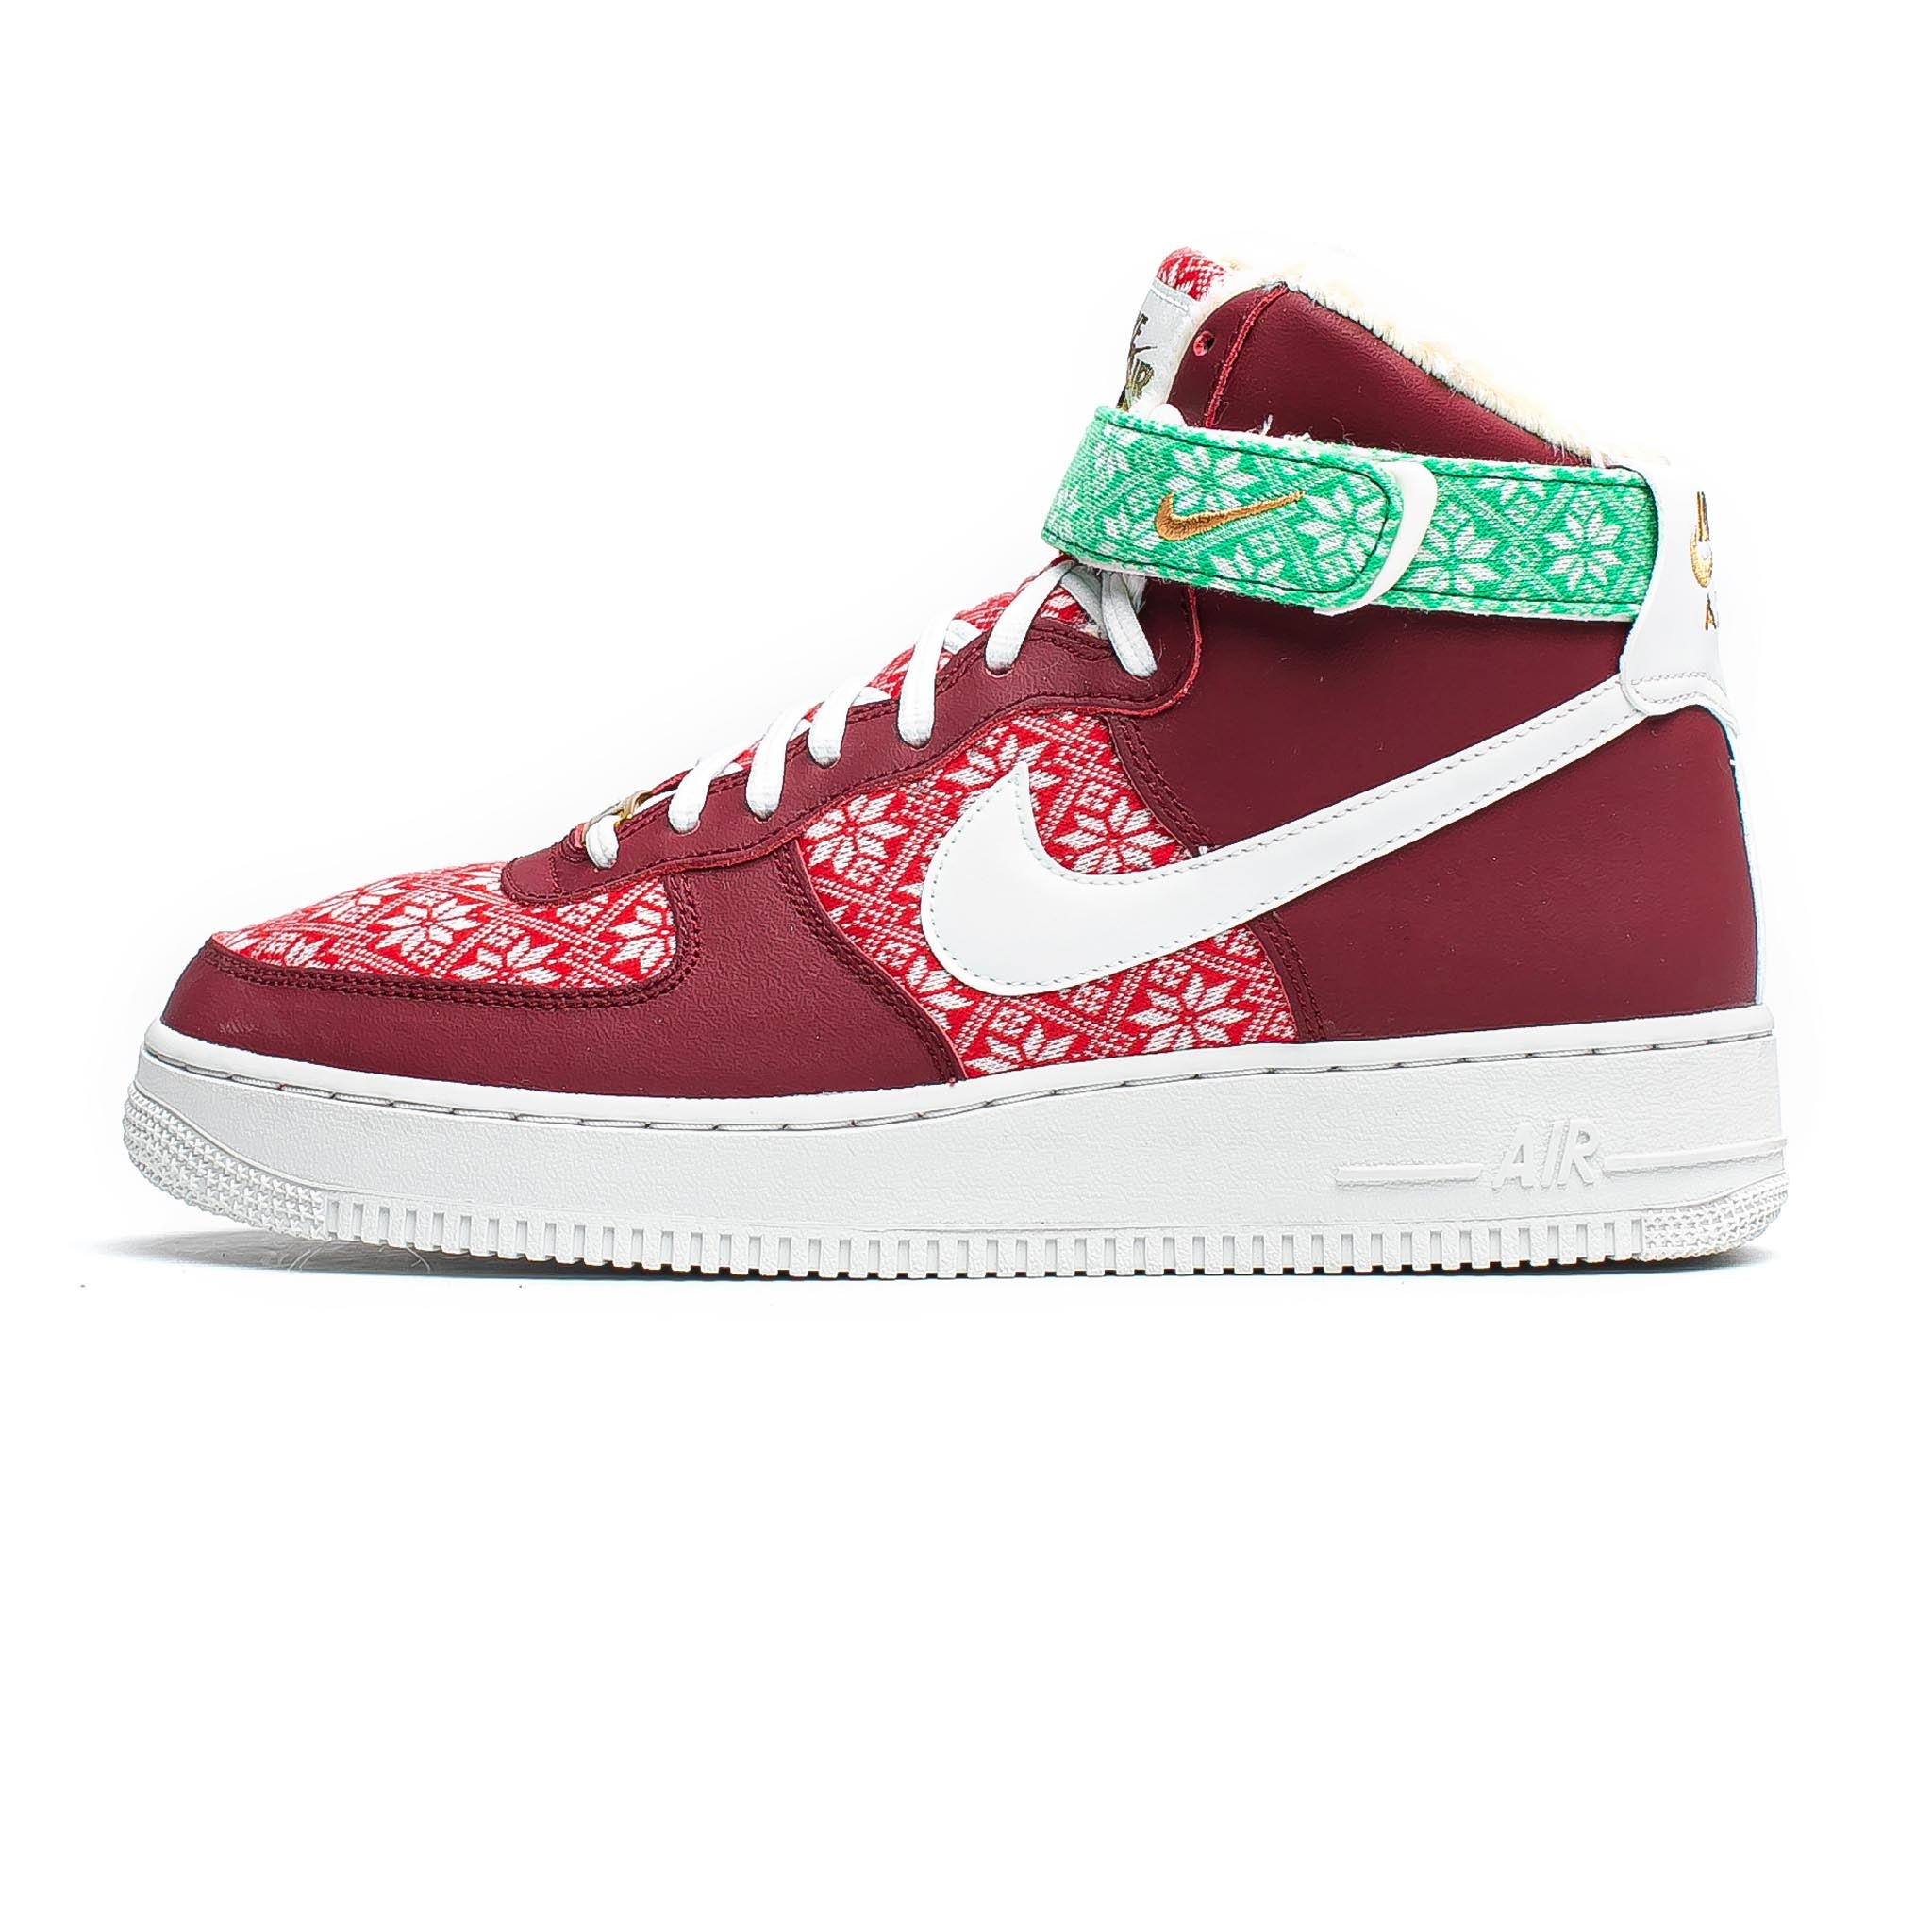 Nike Air Force 1 High '07 LV8 'Nordic Christmas'